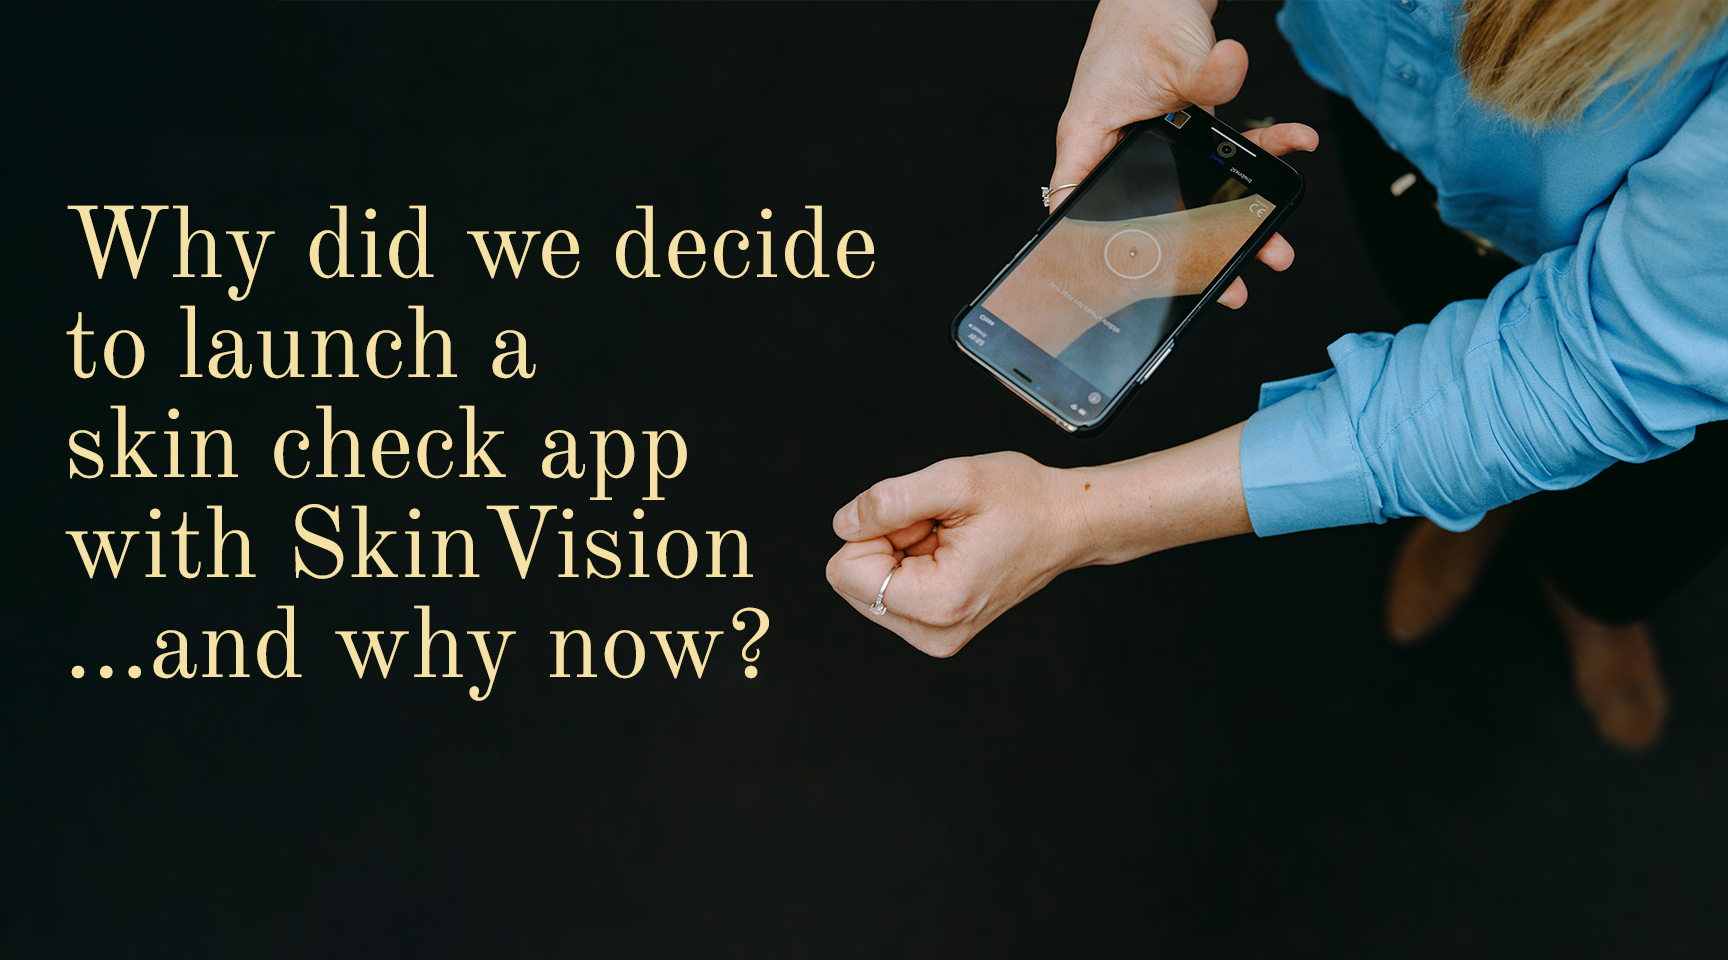 Why did we decide to launch a skin check app with SkinVision and why now?